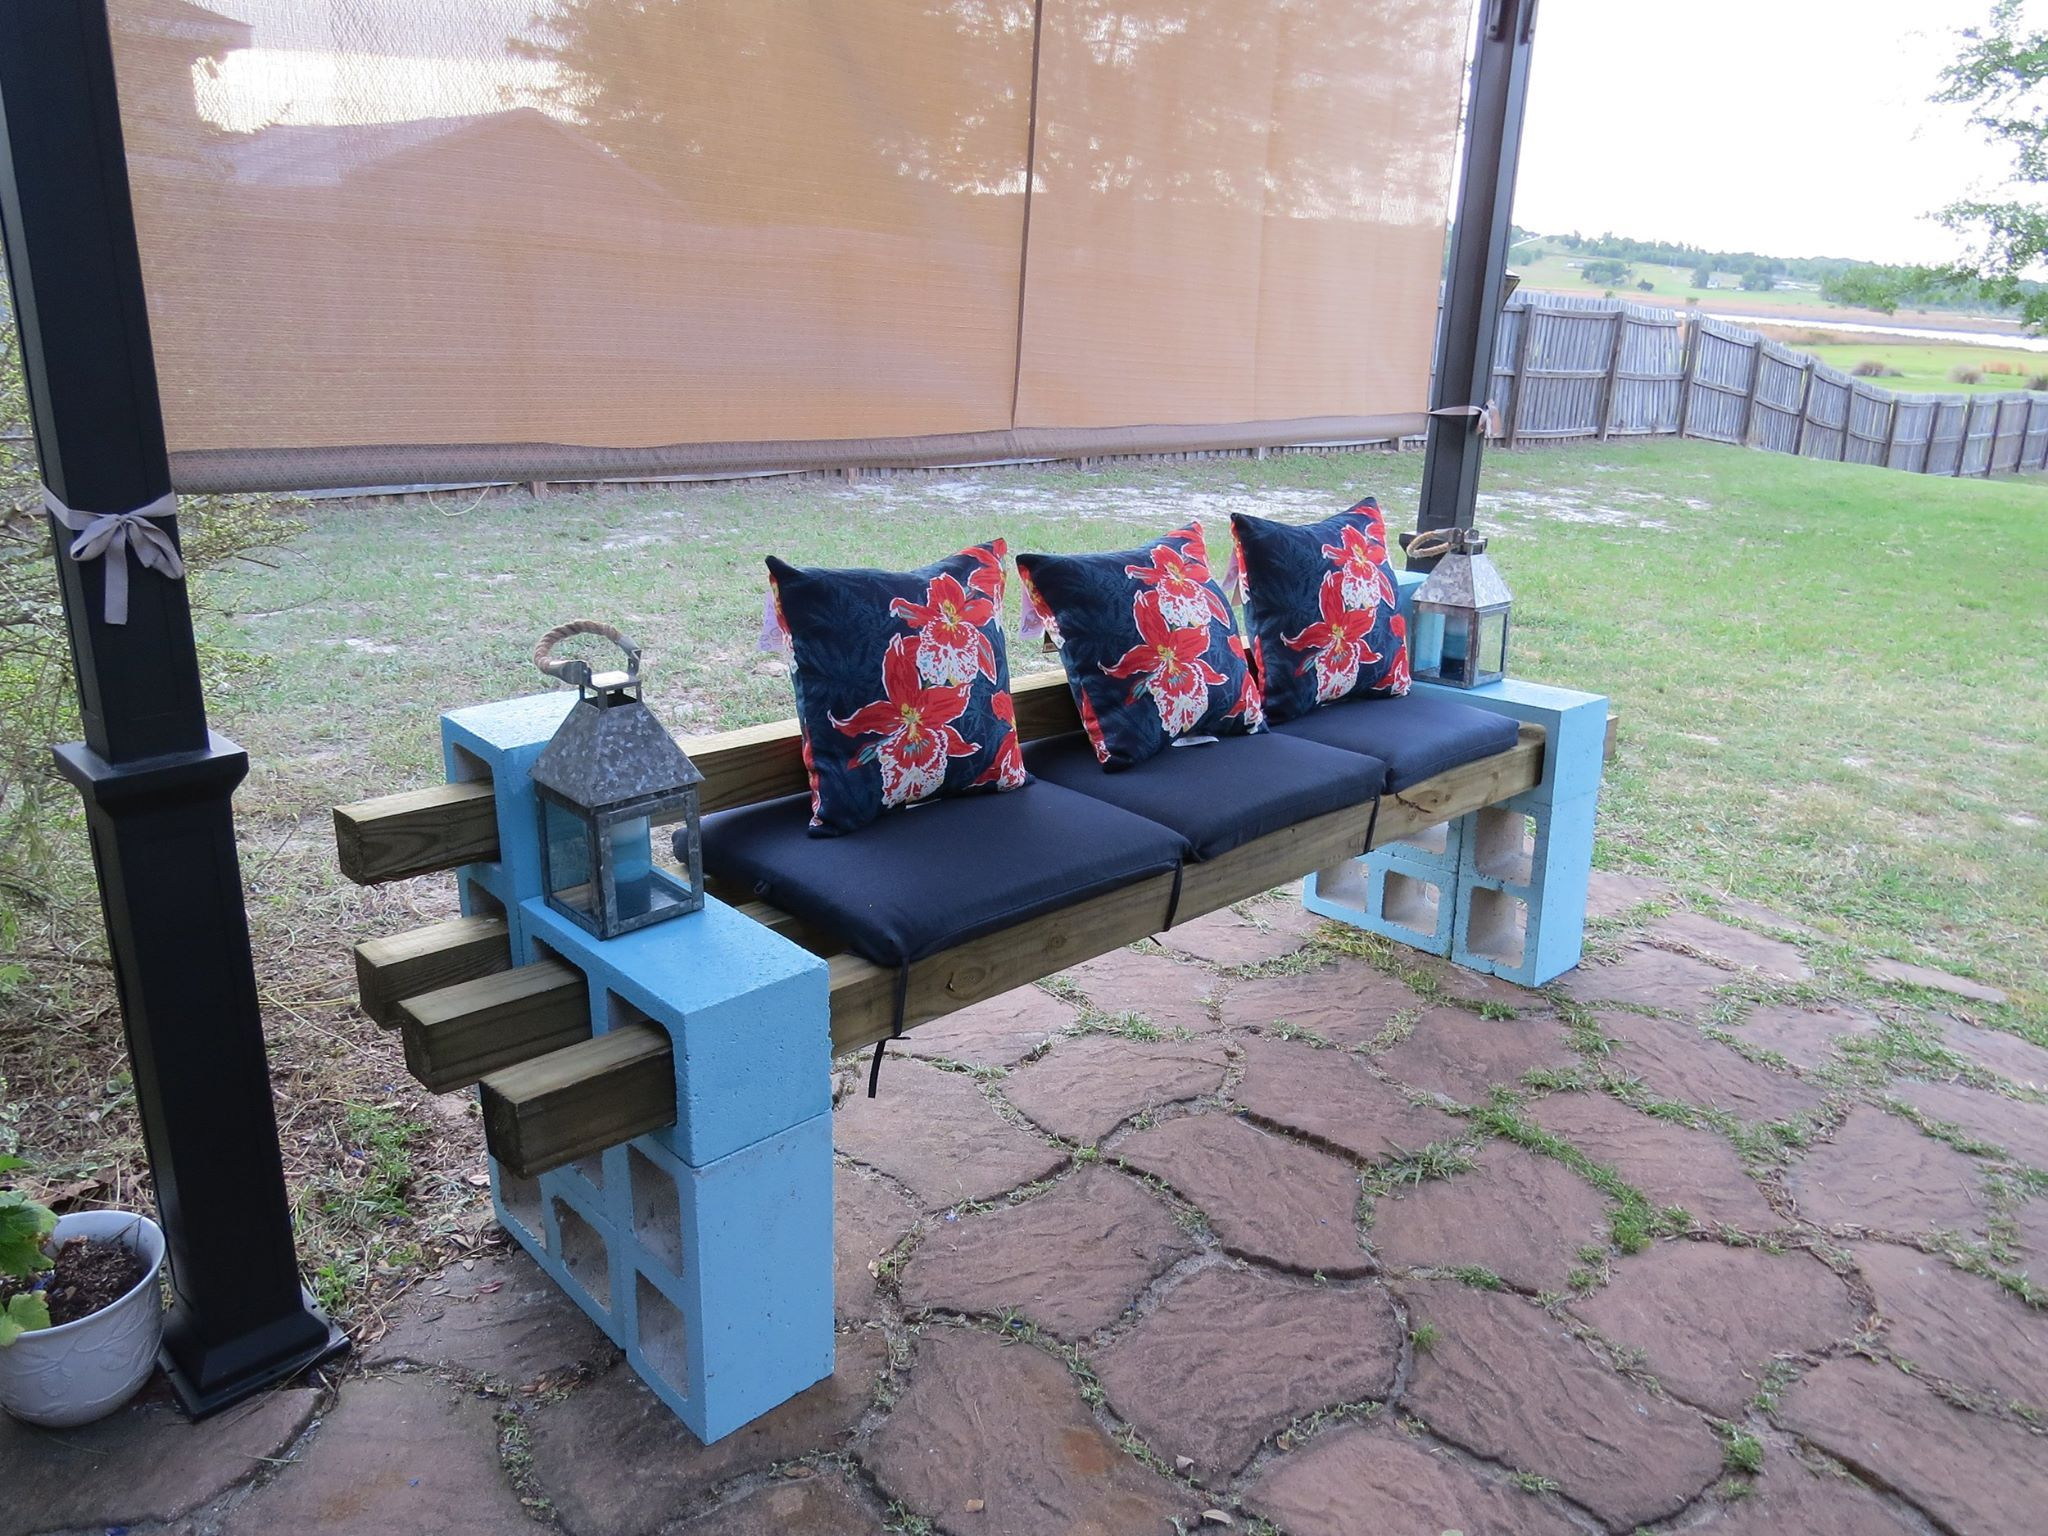 Design Cinder Block Bench diy patio bench using concrete cinder blocks 4x4 wood and cushions cushions